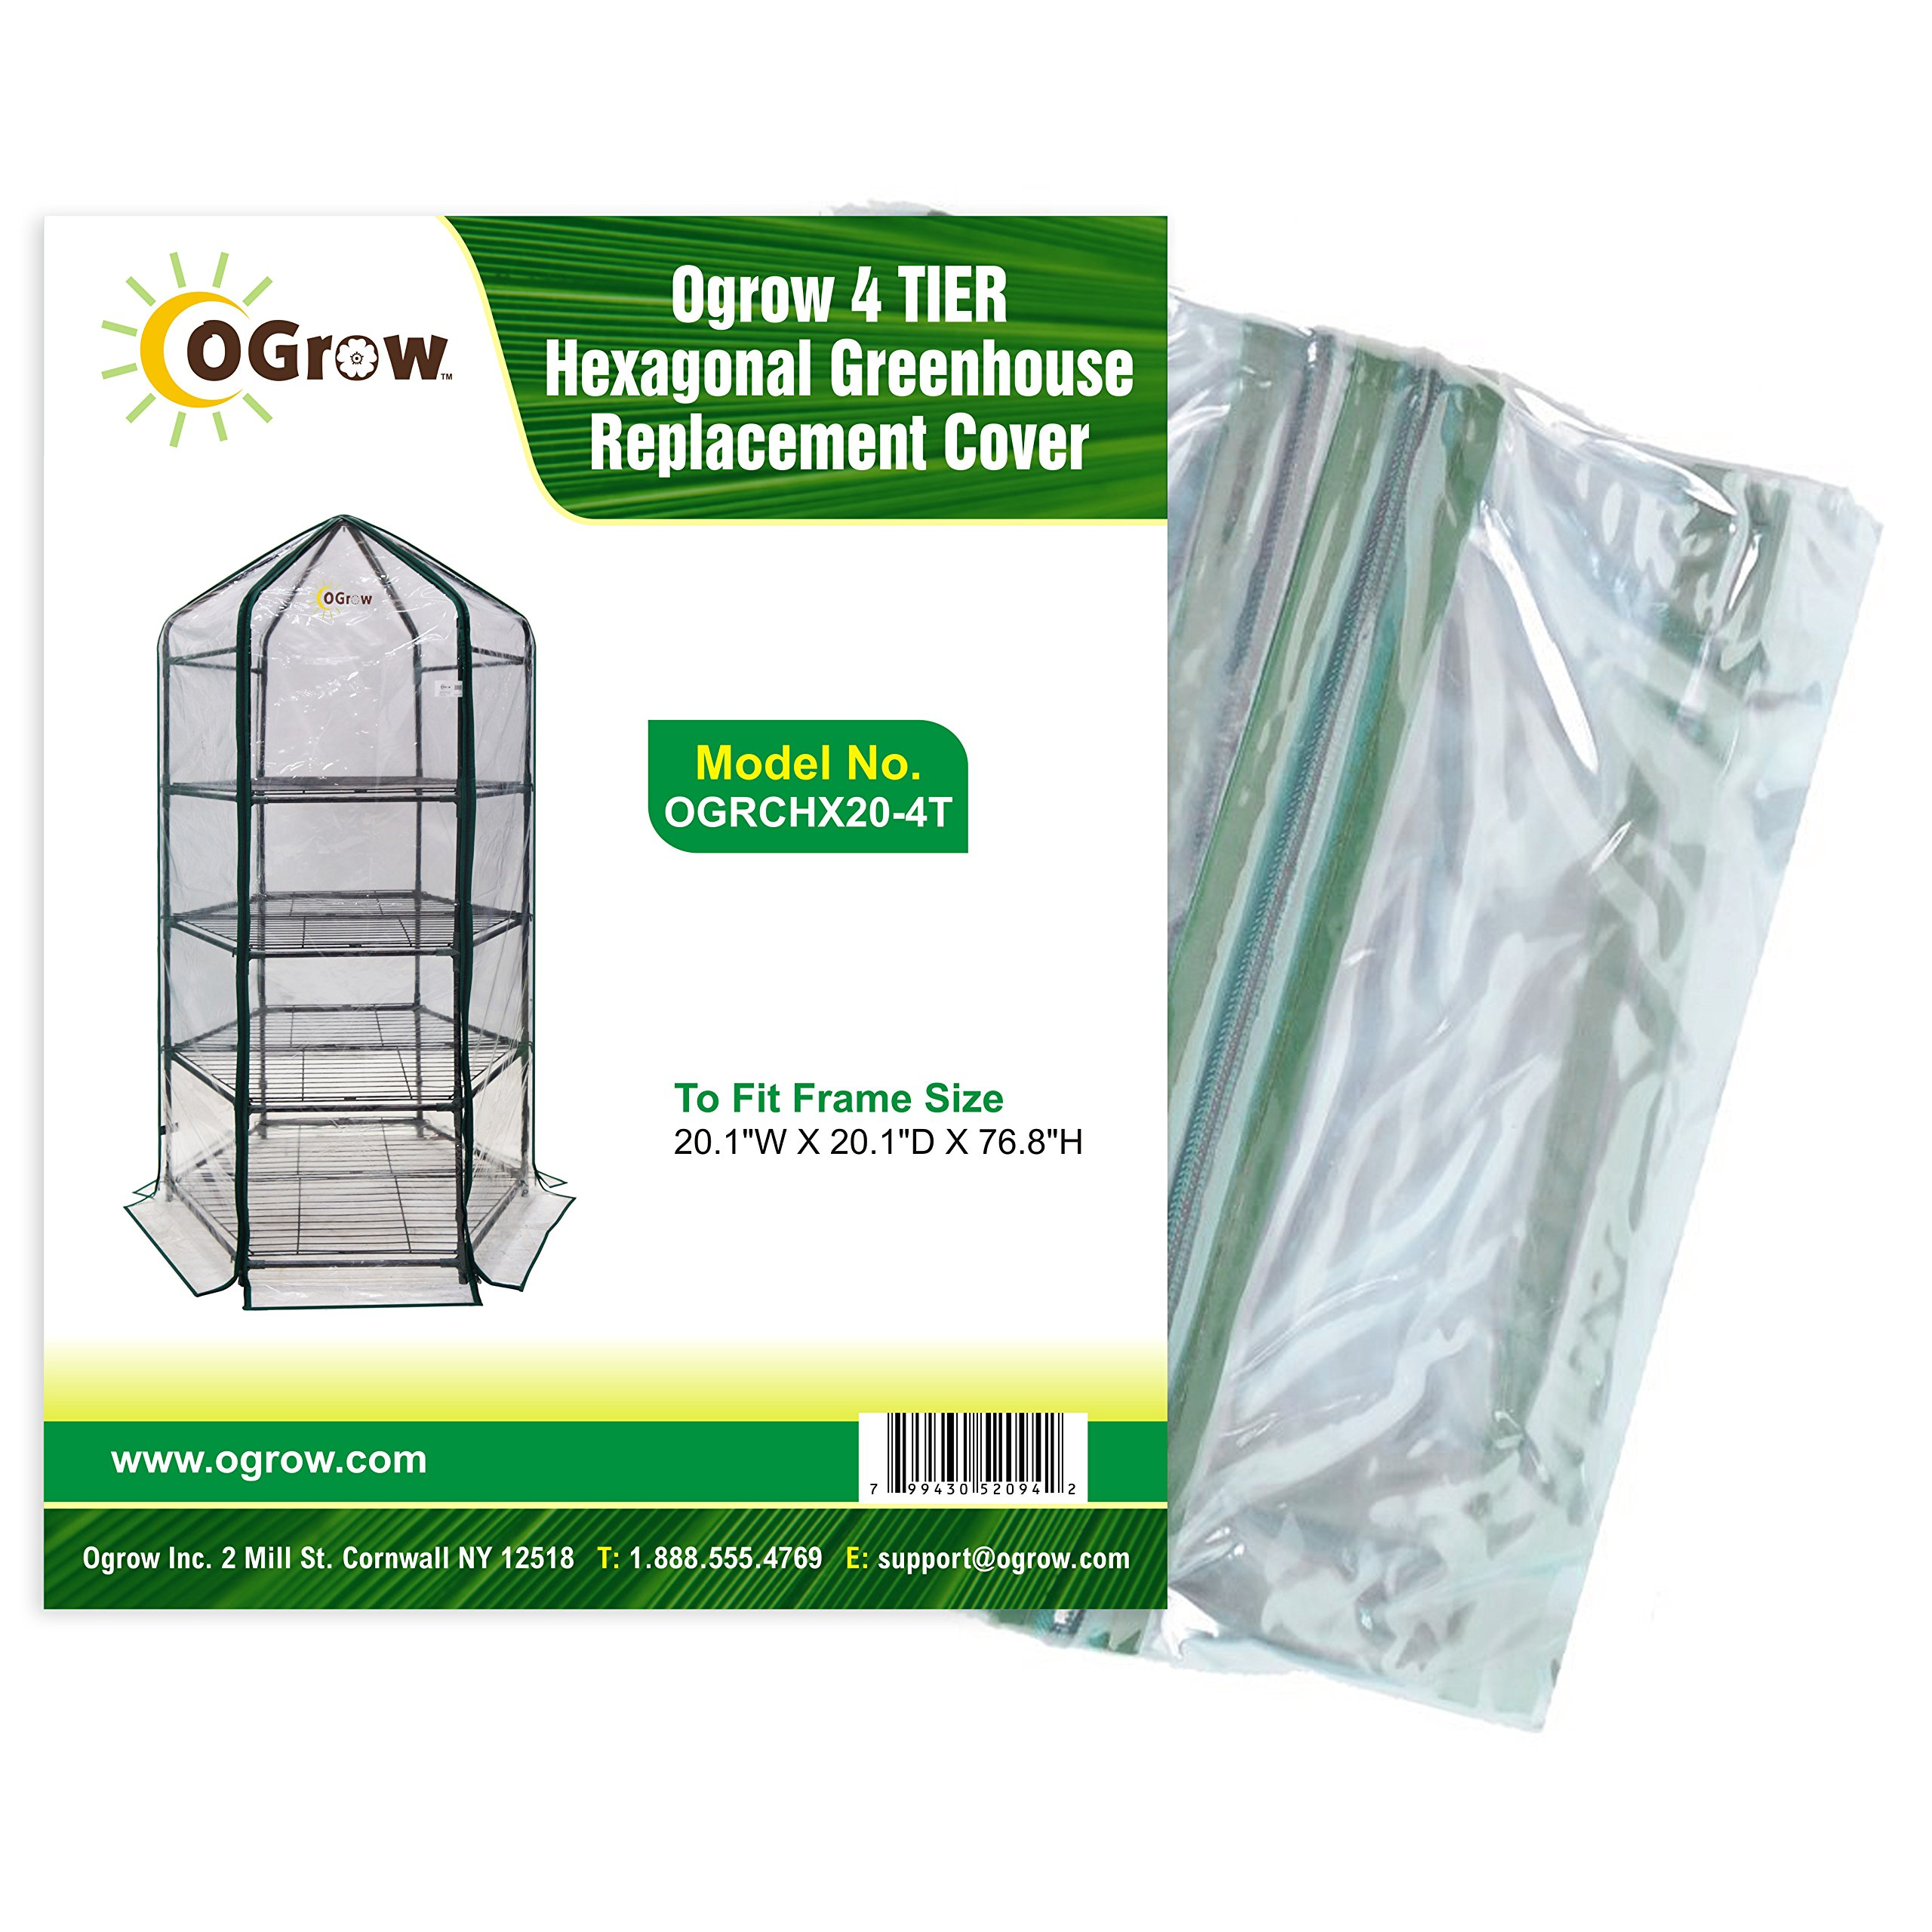 Portable Greenhouse Replacement Cover : Galleon ogrow tier hexagonal greenhouse replacement